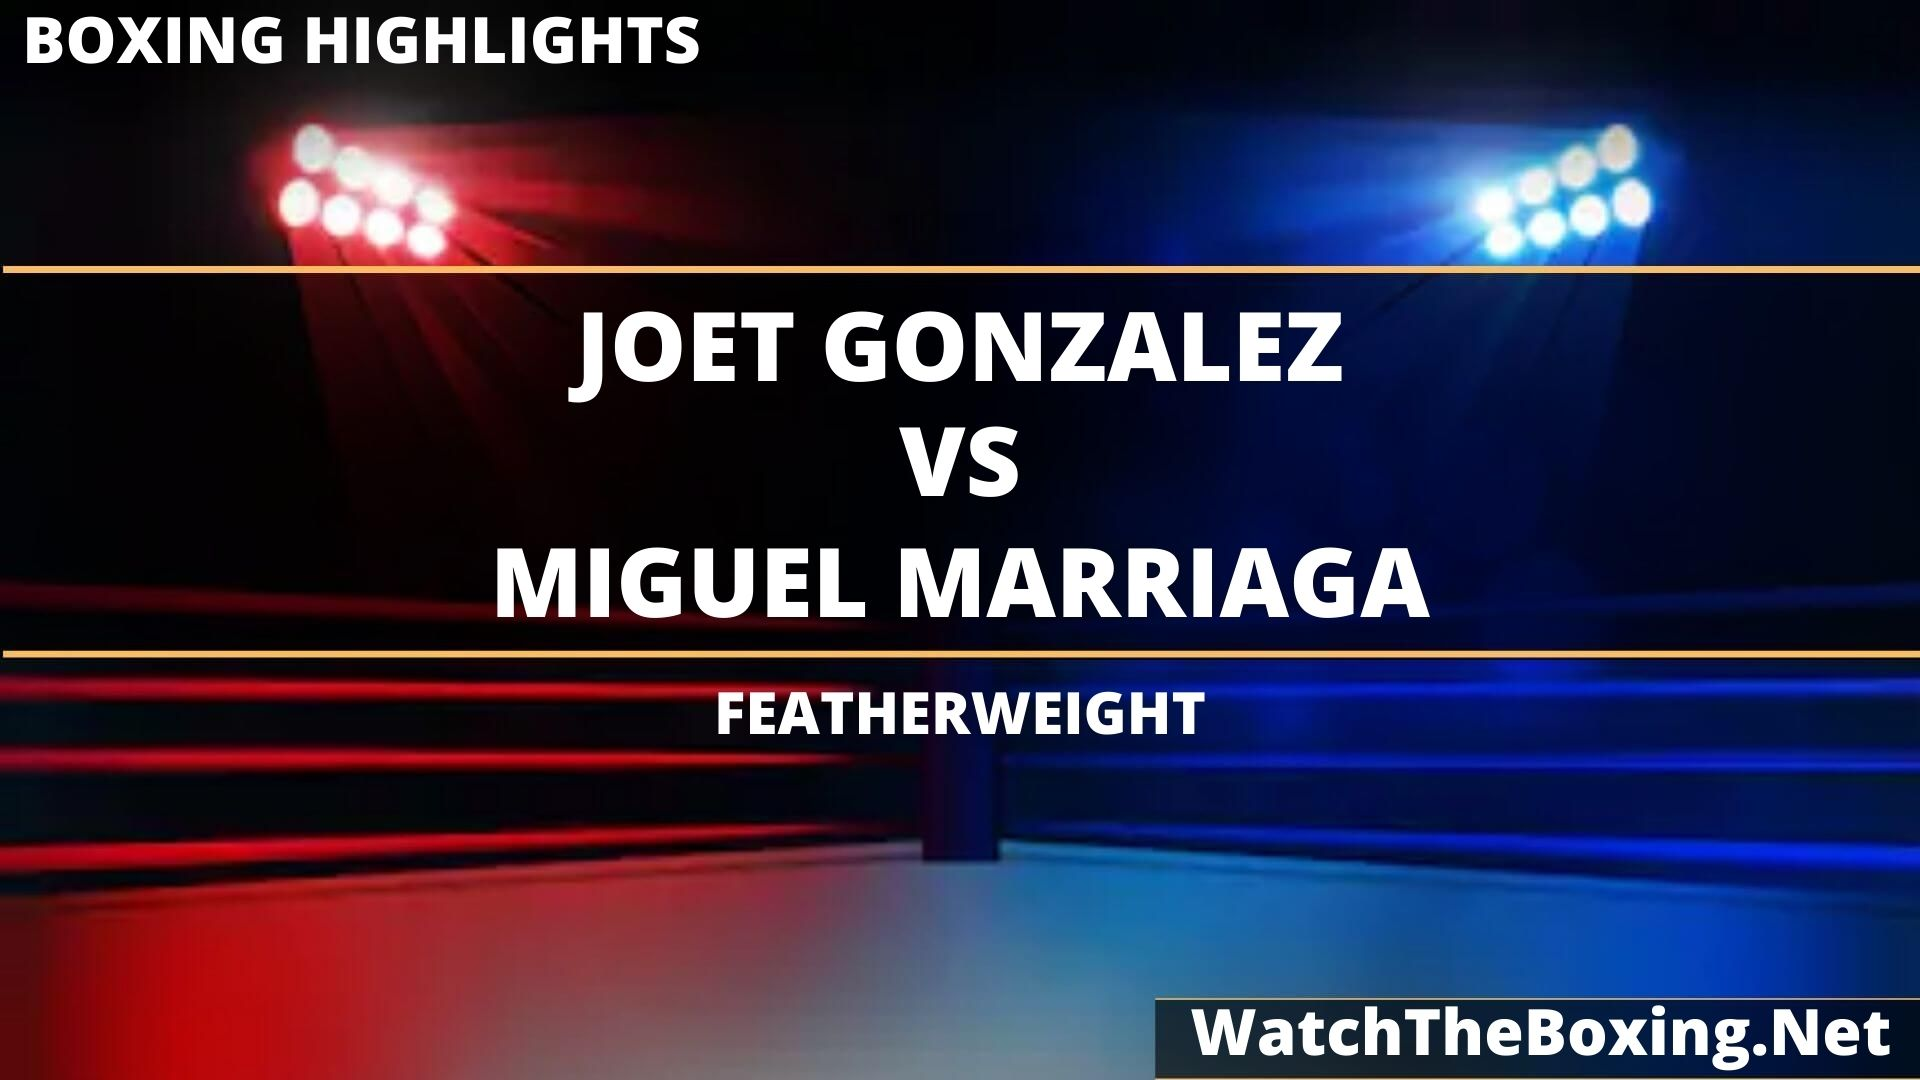 Joet Gonzalez Vs Miguel Marriaga Highlights 2020 Featherweight